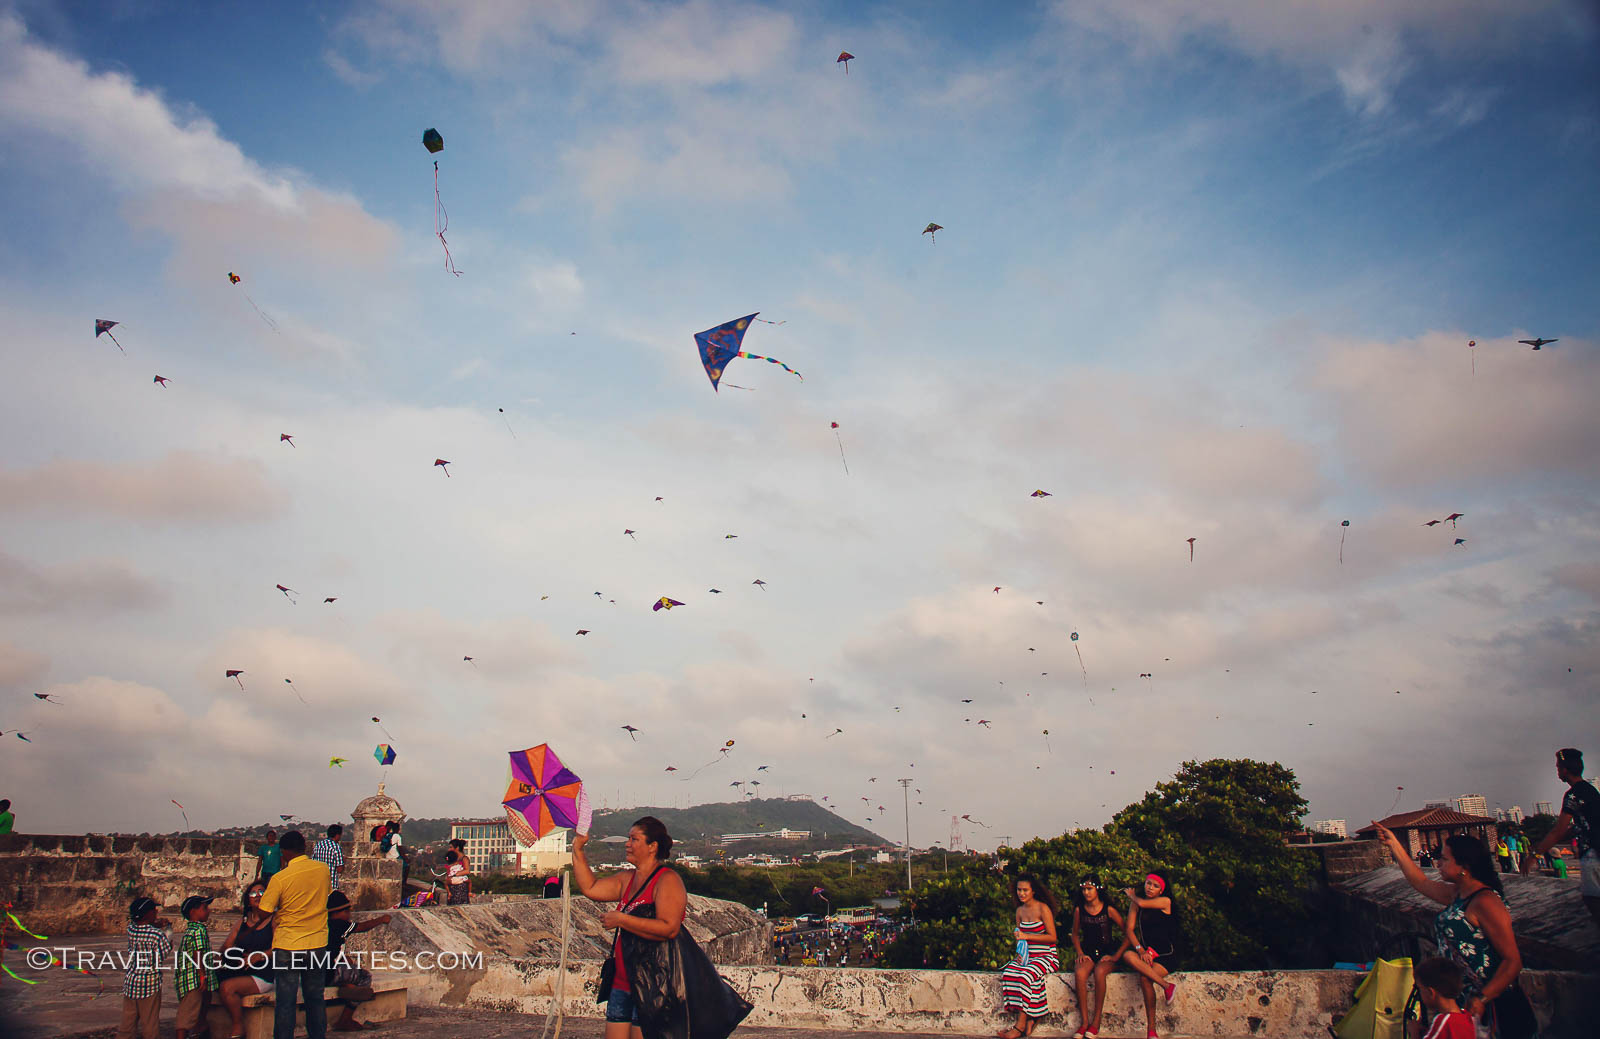 Kite flying on the wall of Old Cartagena, Colombia